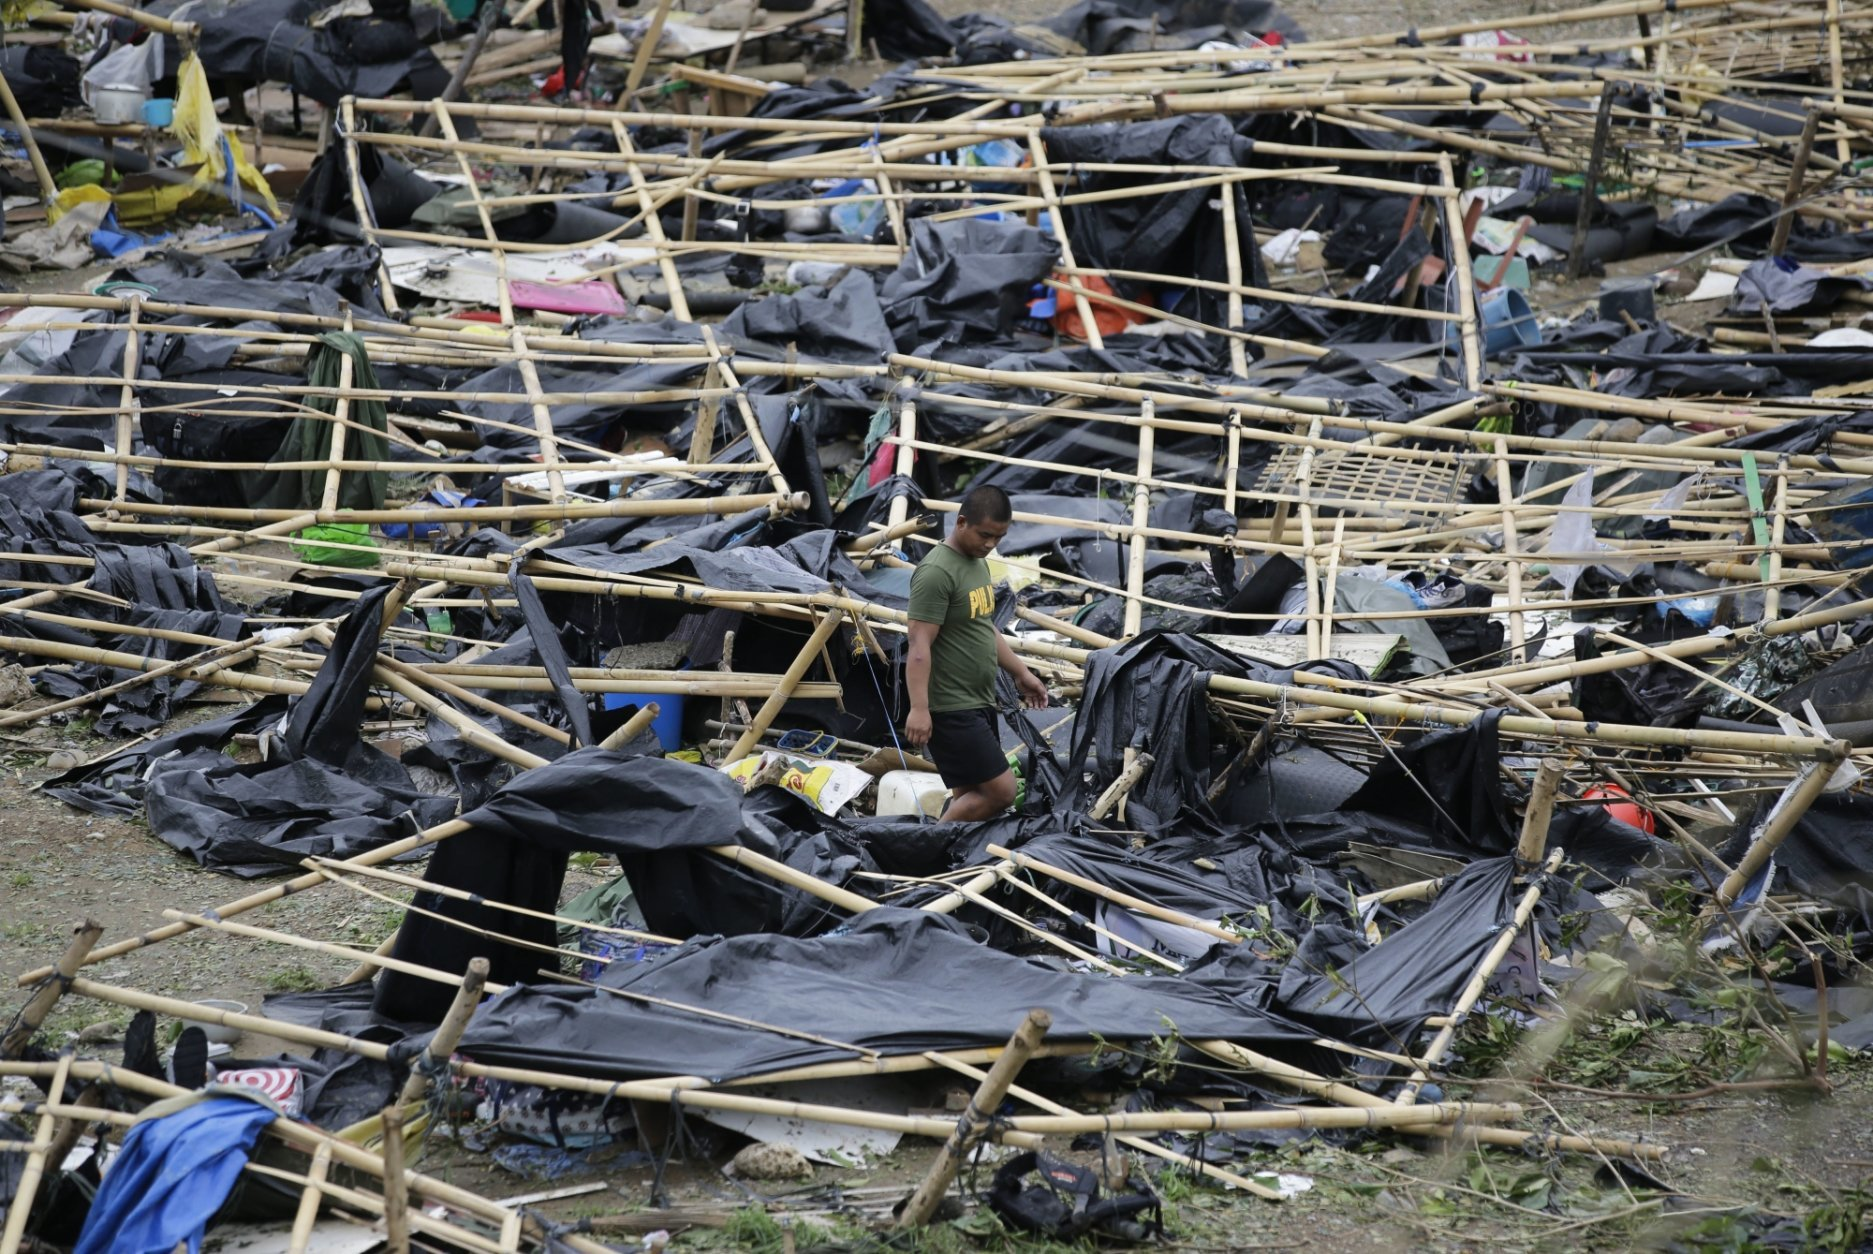 A policeman walks through makeshift tent shelters damaged by strong winds from Typhoon Mangkhut after it barreled across Tuguegarao city in Cagayan province, northeastern Philippines on Sunday, Sept. 16, 2018. Typhoon Mangkhut roared toward densely populated Hong Kong and southern China on Sunday after ravaging across the northern Philippines with ferocious winds and heavy rain causing landslides and collapsed houses. (AP Photo/Aaron Favila)